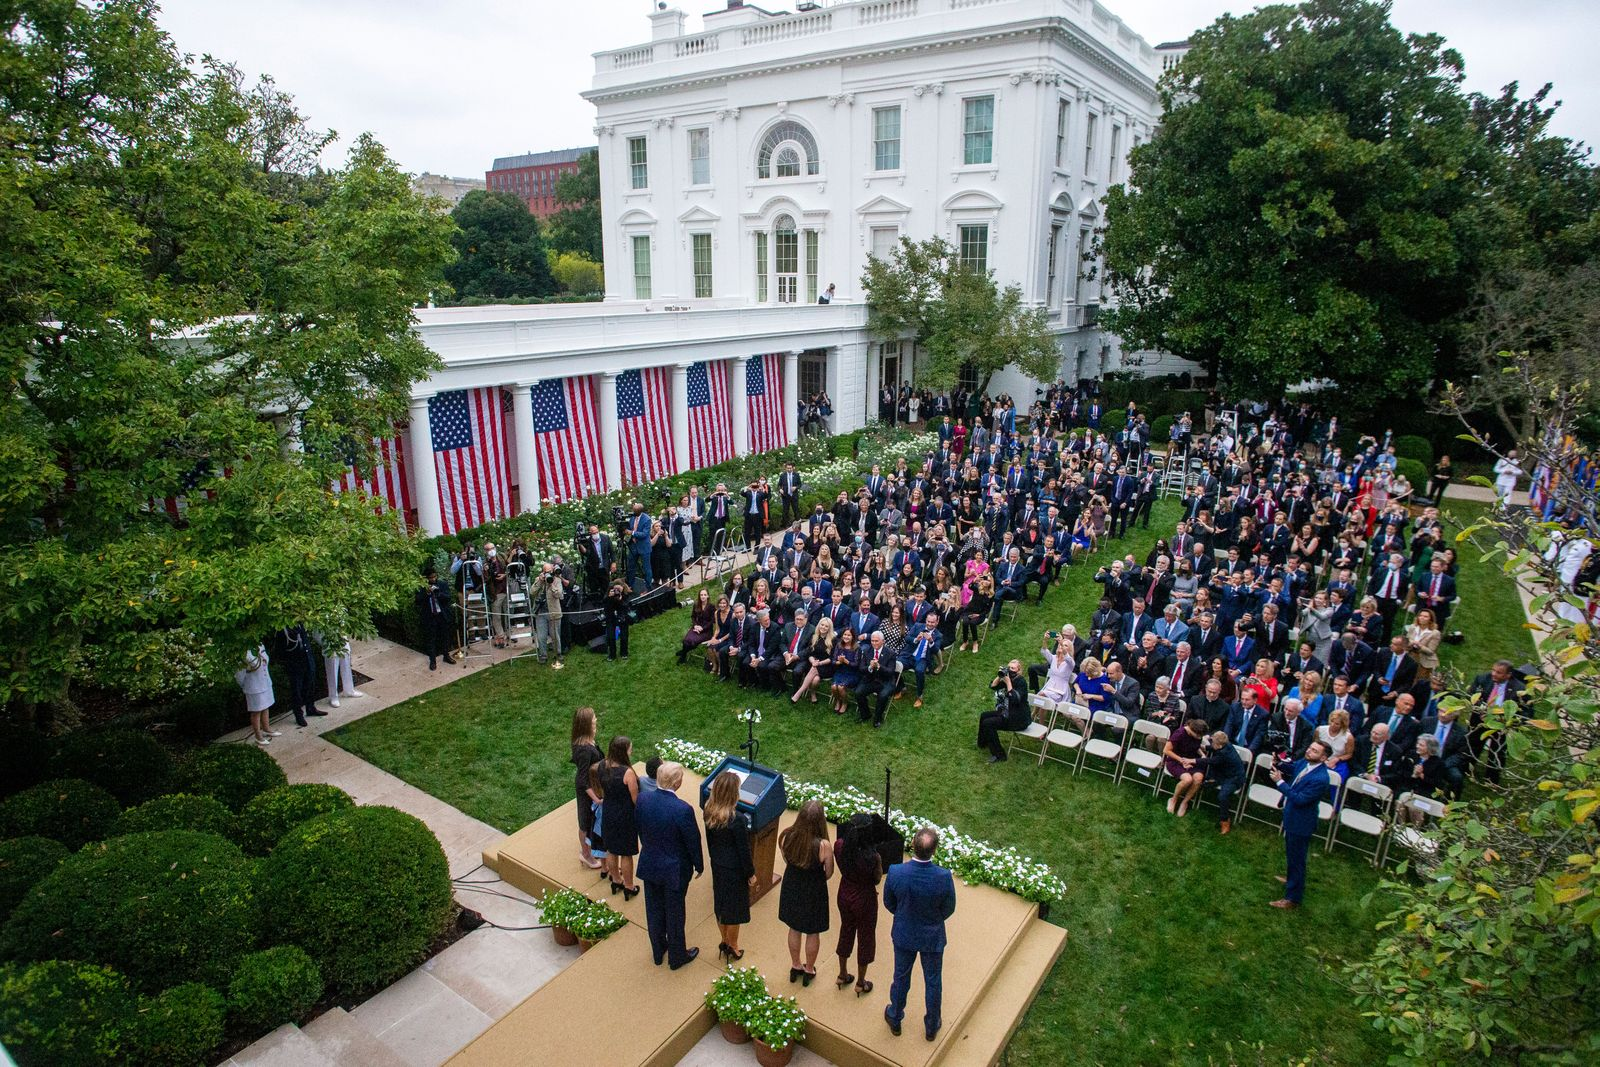 US President Donald J. Trump introduces Judge Amy Coney Barrett as his nominee to be an Associate Justice of the Supreme Court, Washington, USA - 26 Sep 2020